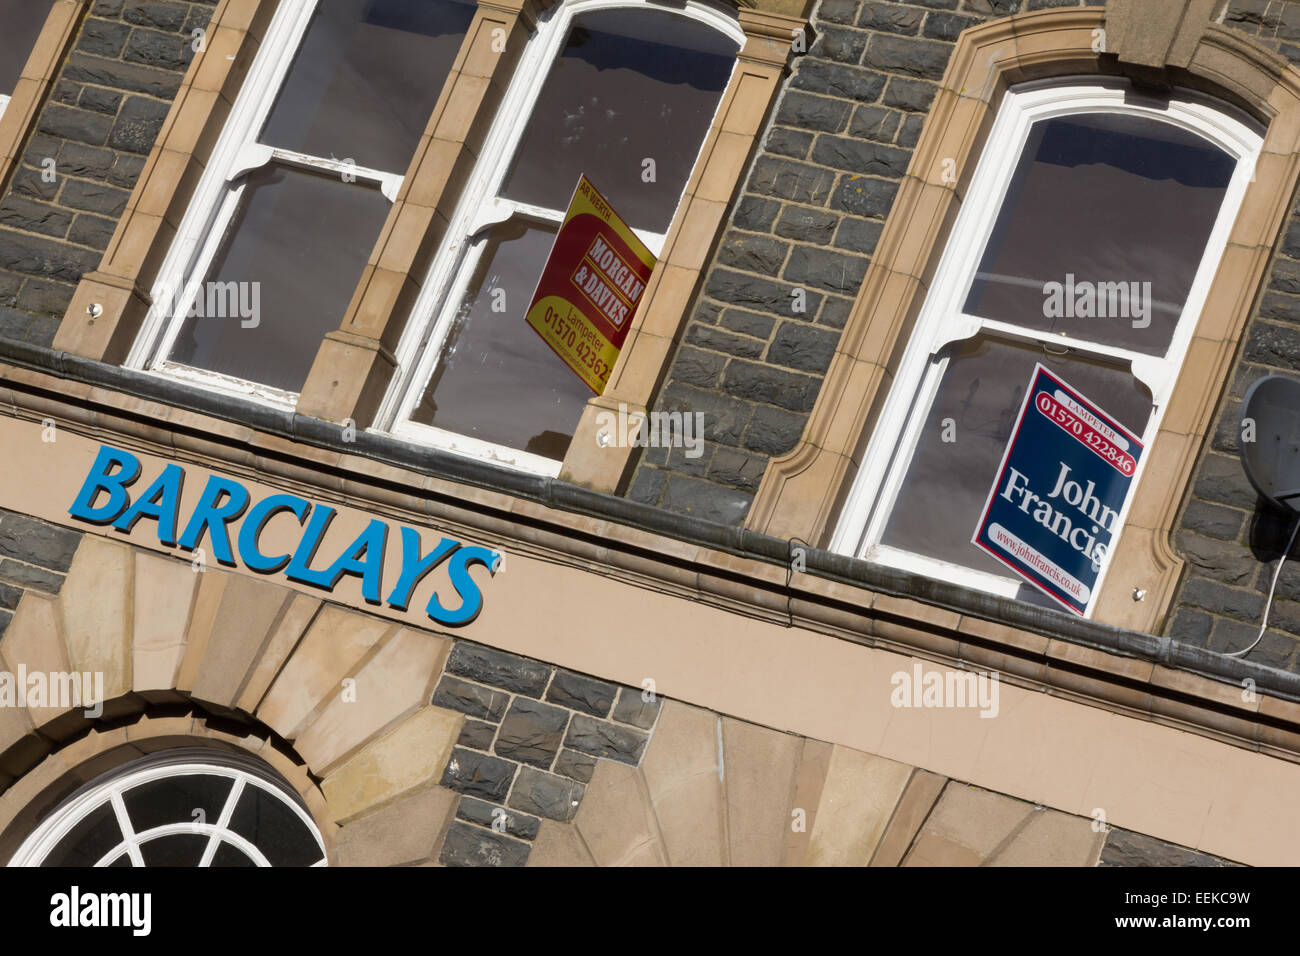 Barclays bank closure at Tregaron in mid Wales. Estate agents' for sale signs outside. Stock Photo